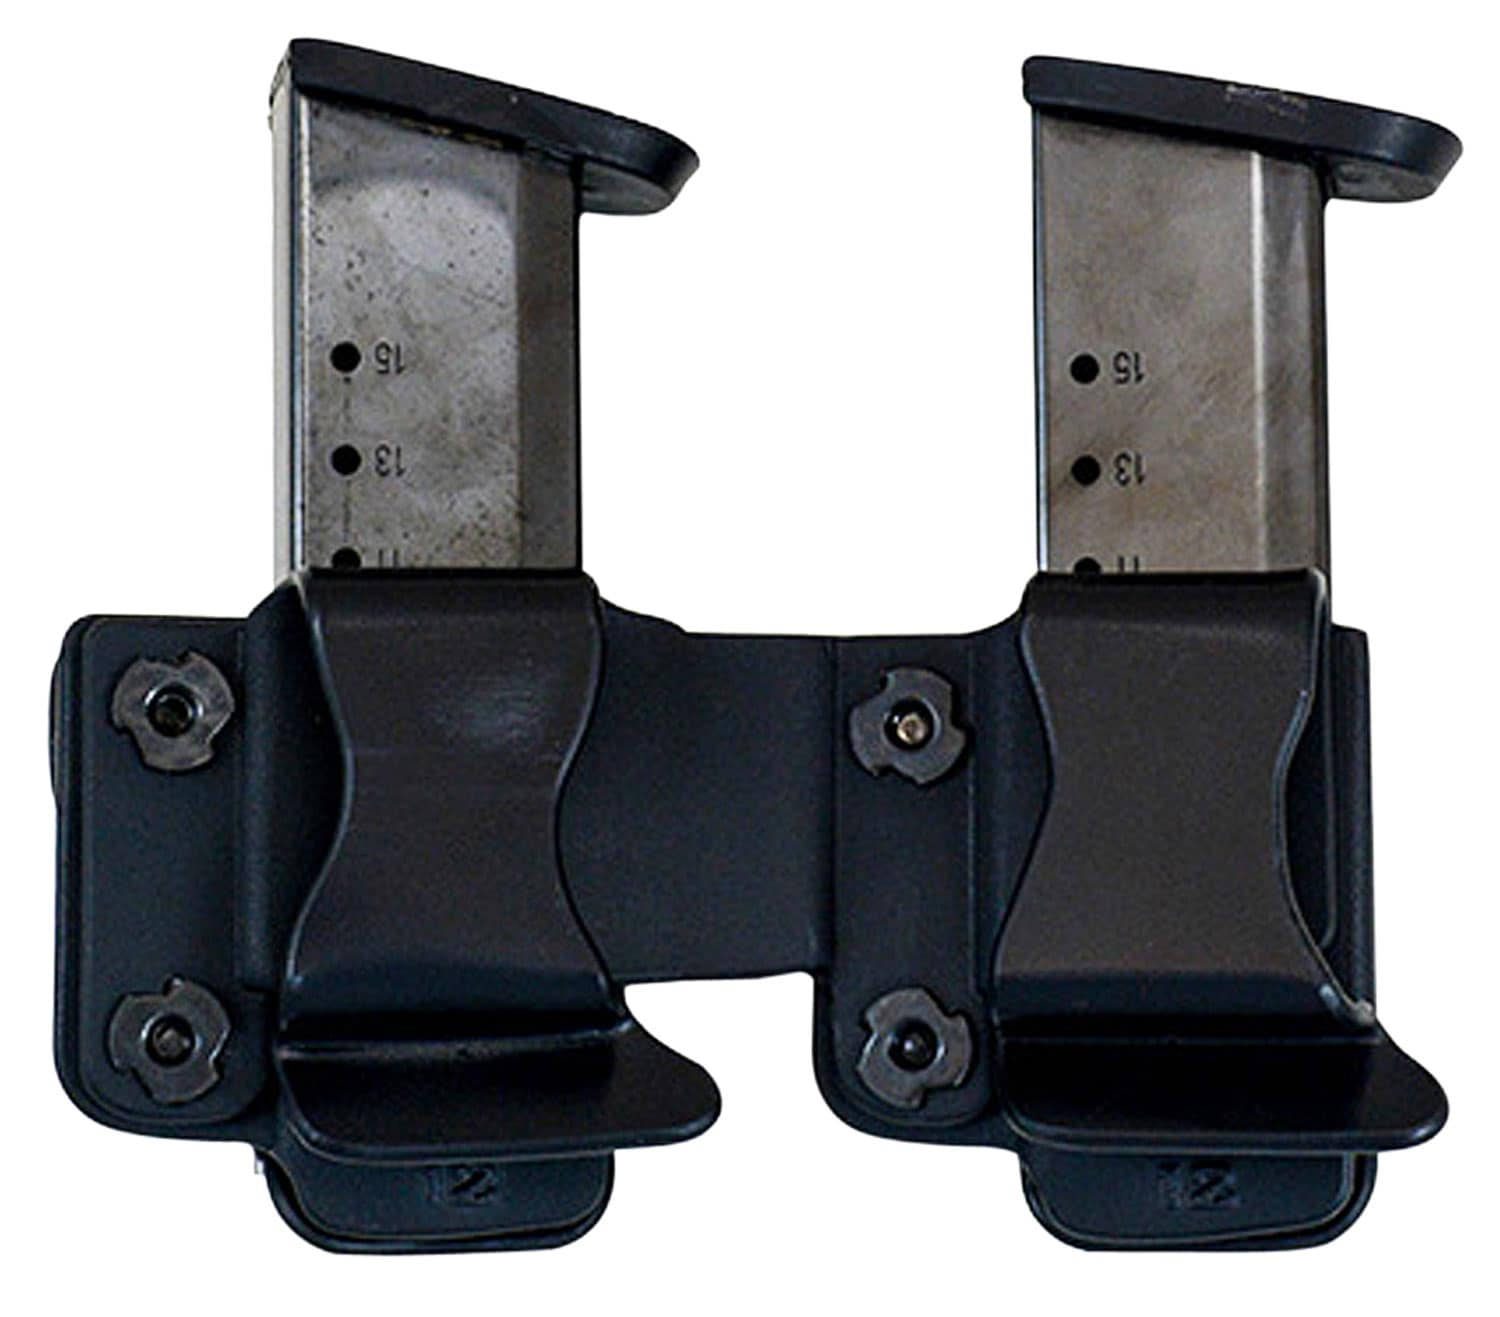 COMP-TAC TWIN MAG POUCH